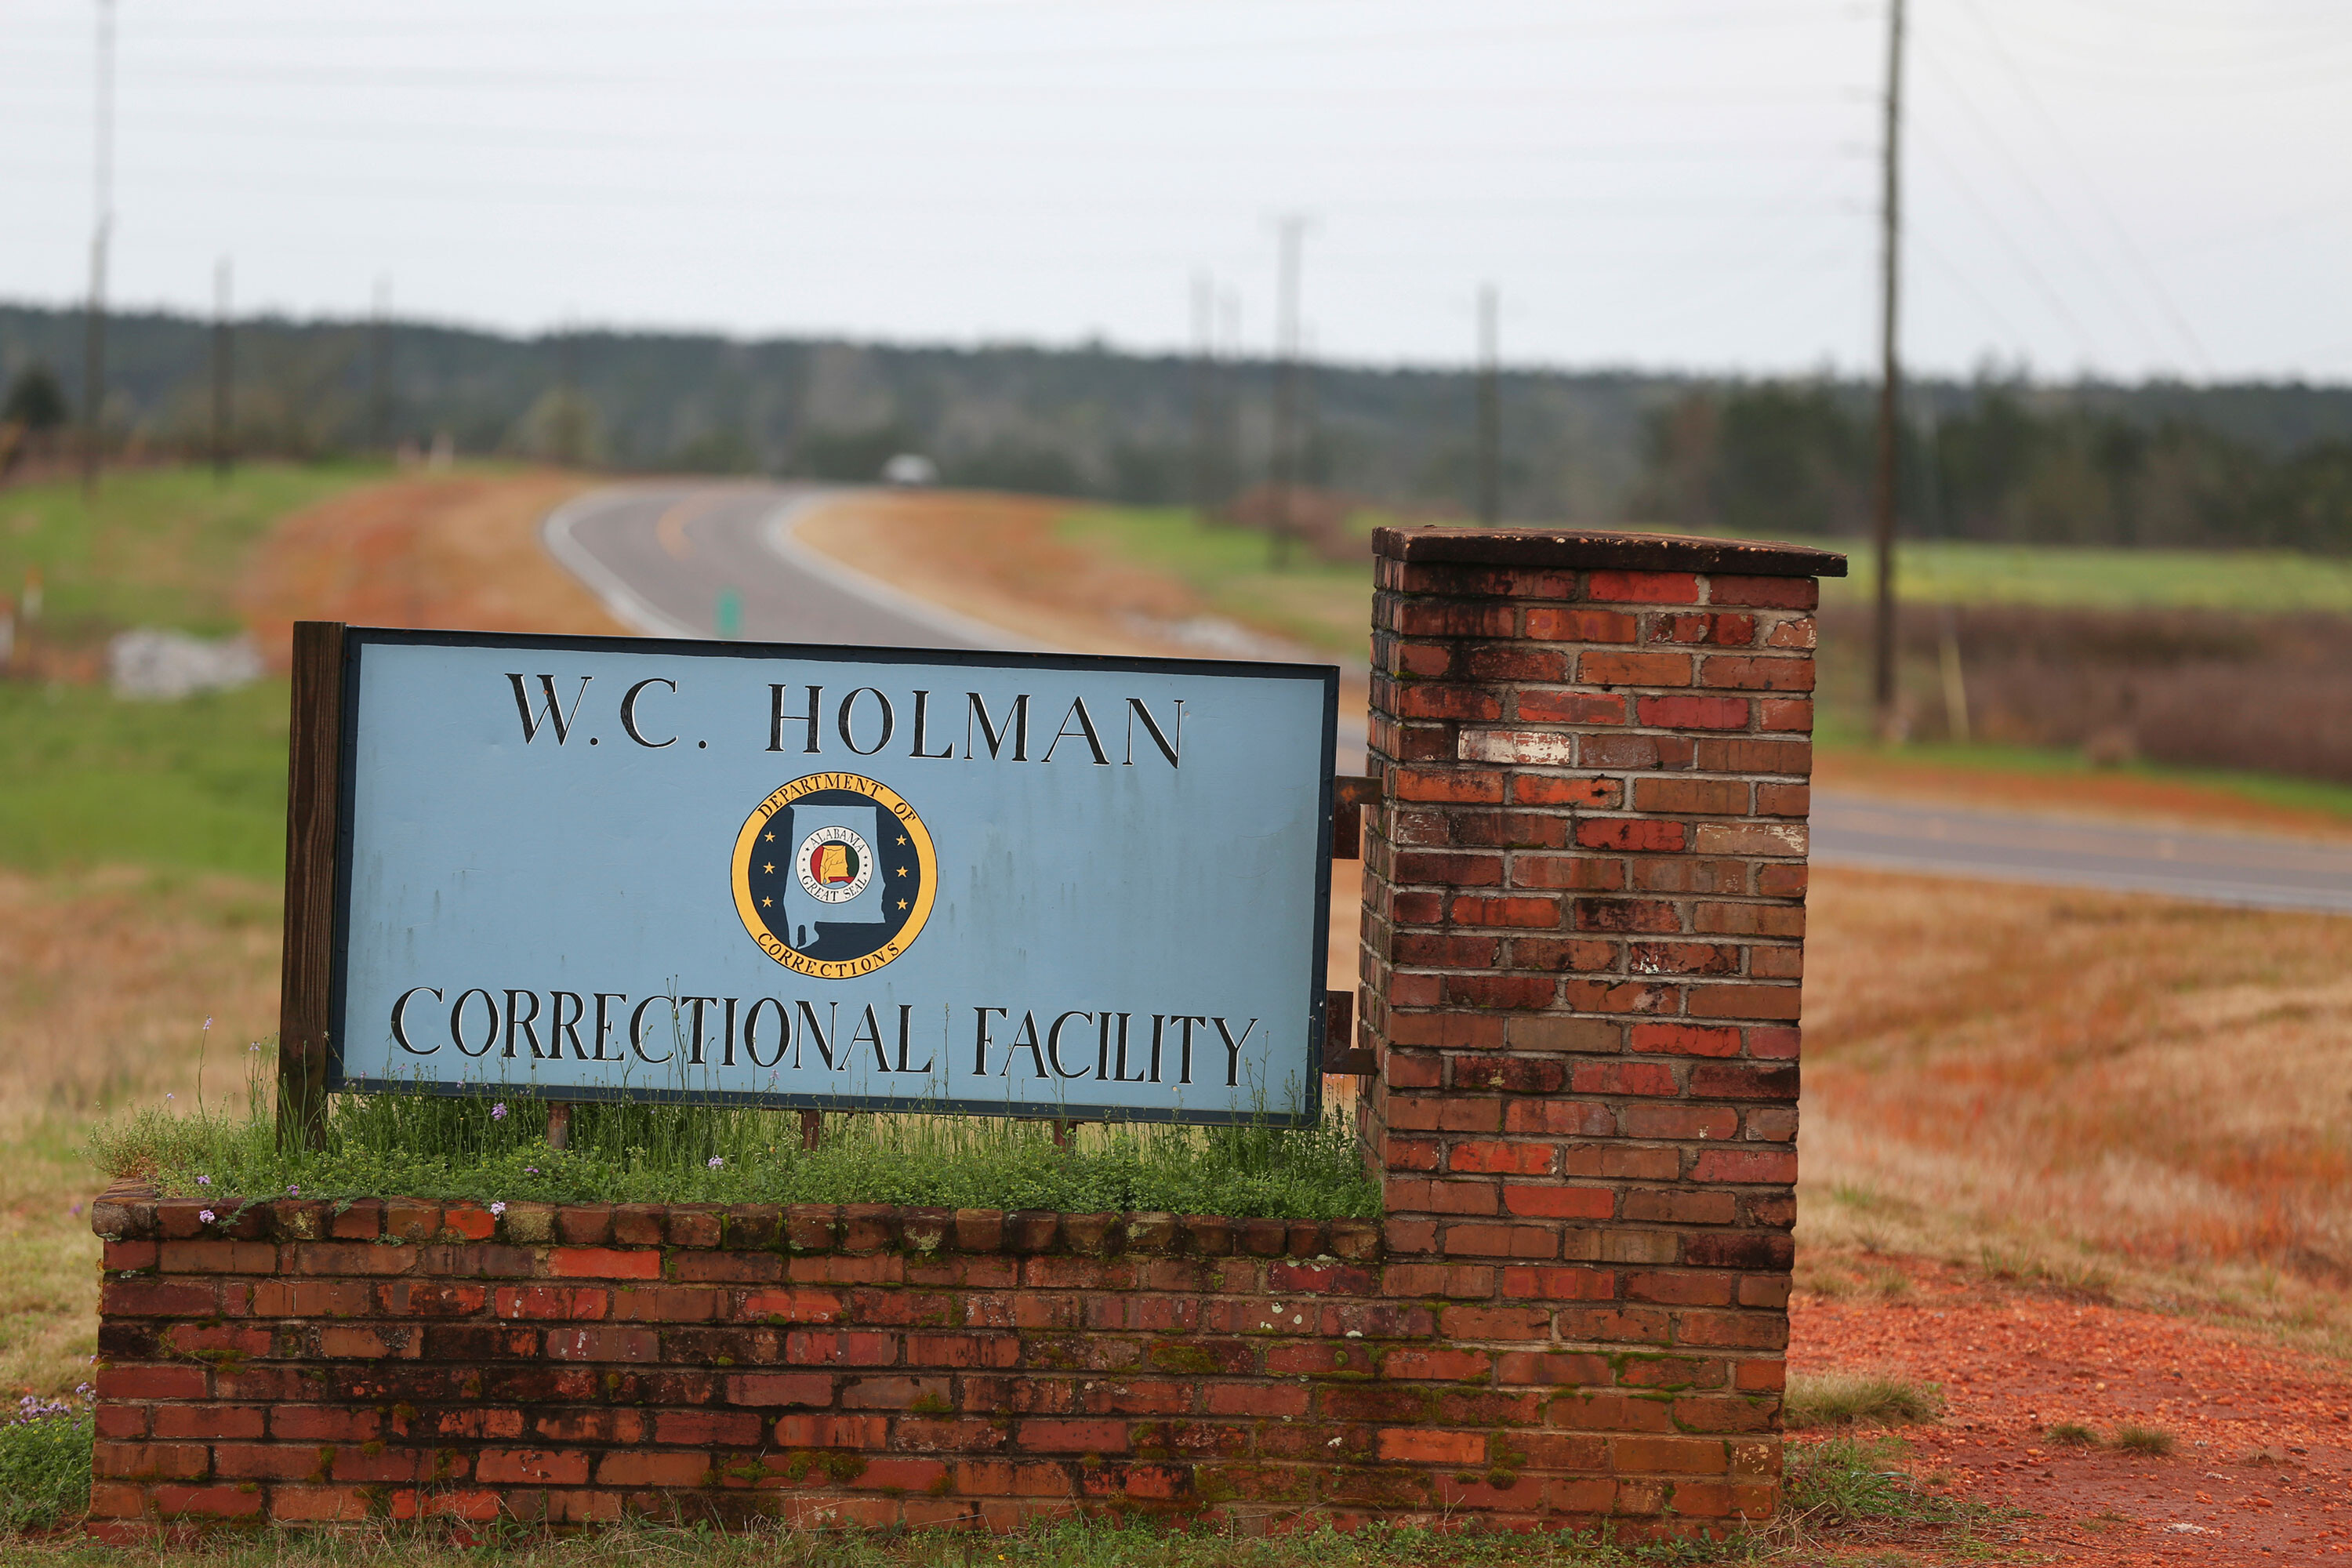 Alabama death row inmate is executed nearly 30 years after murder conviction